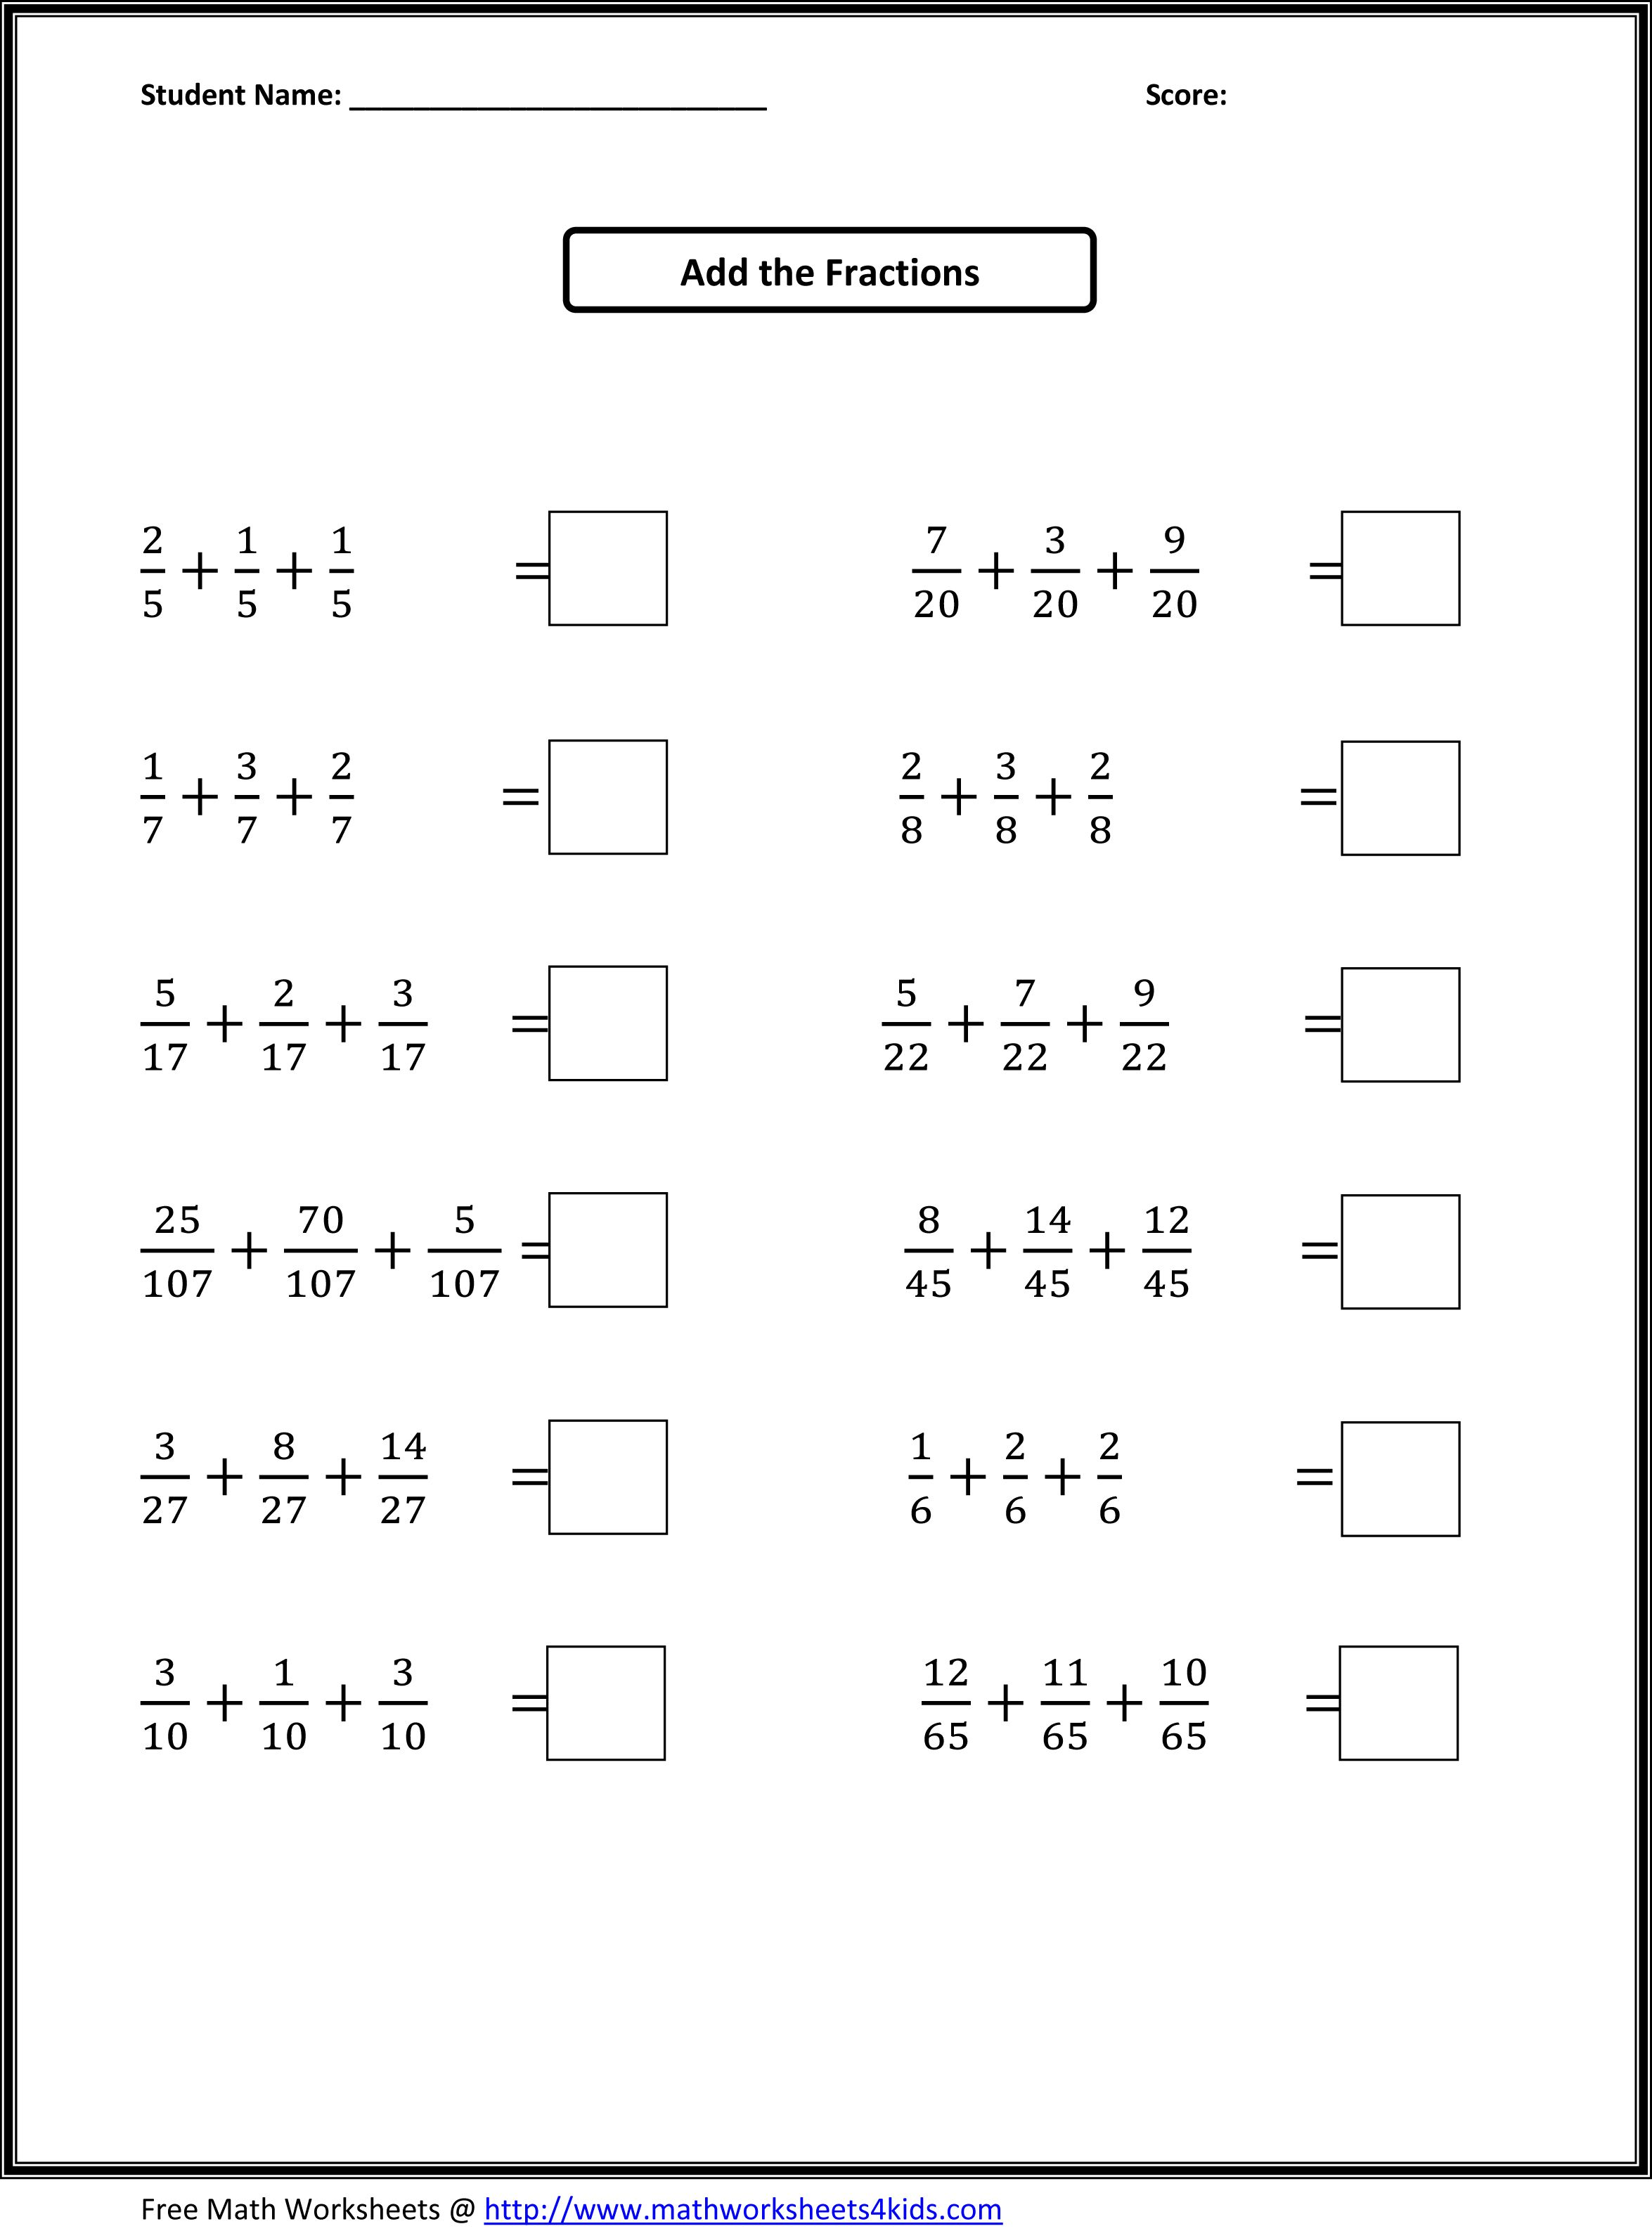 Worksheets 4th Grade Fraction Worksheets printable worksheets by grade level and skill teaching ideas fourth math worksheets